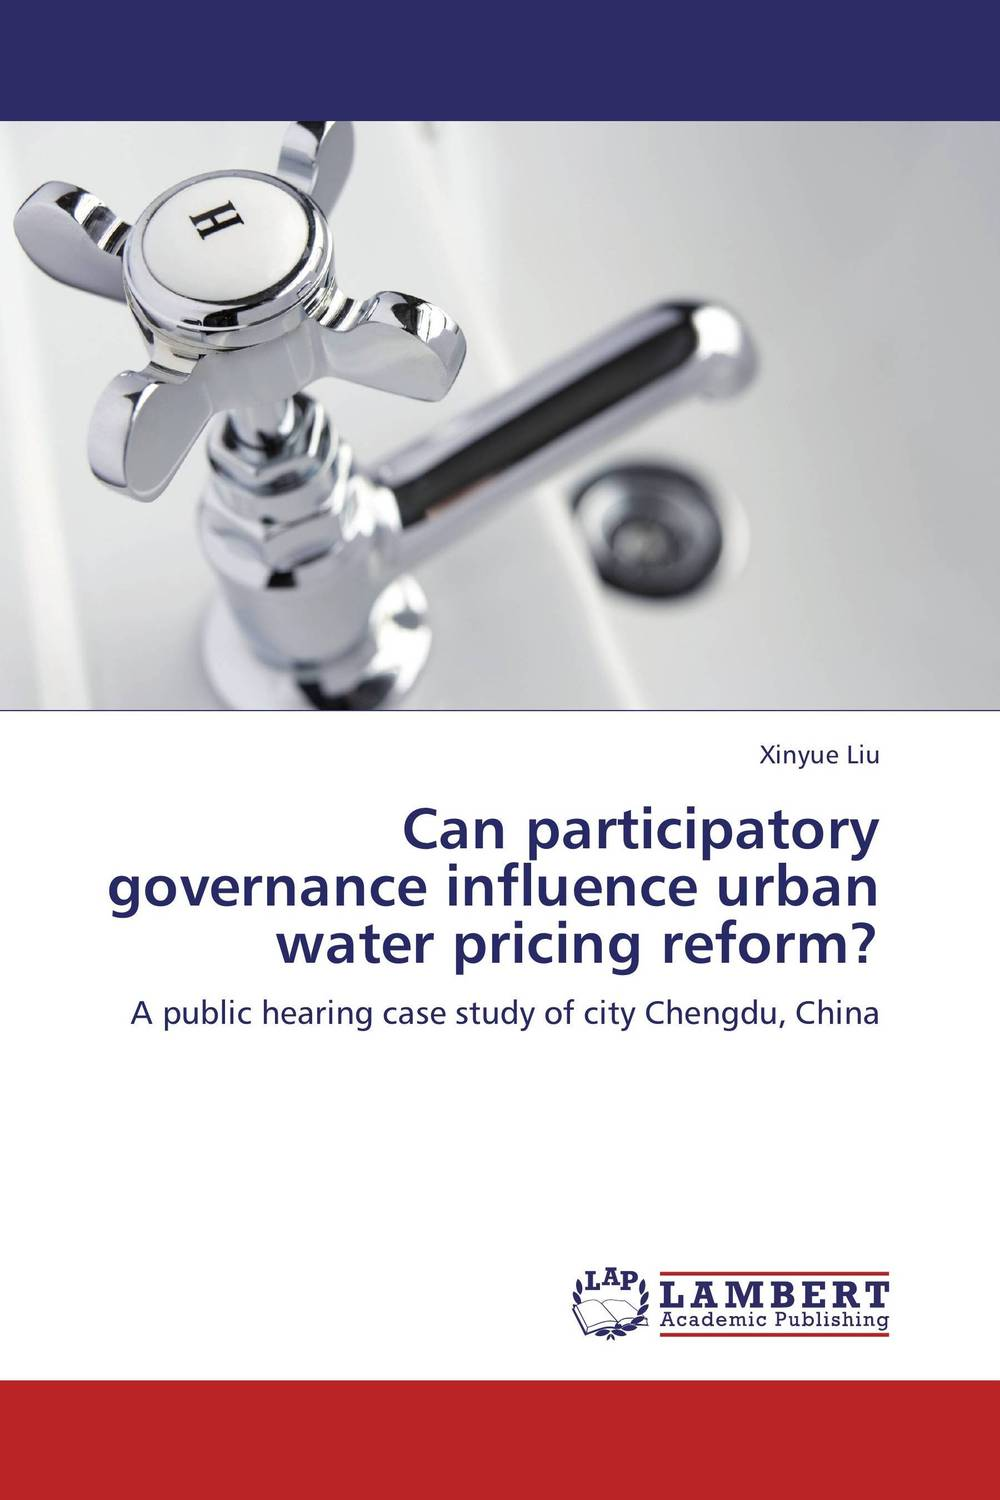 Can participatory governance influence urban water pricing reform? fjord часы fjord fj 6036 44 коллекция olle